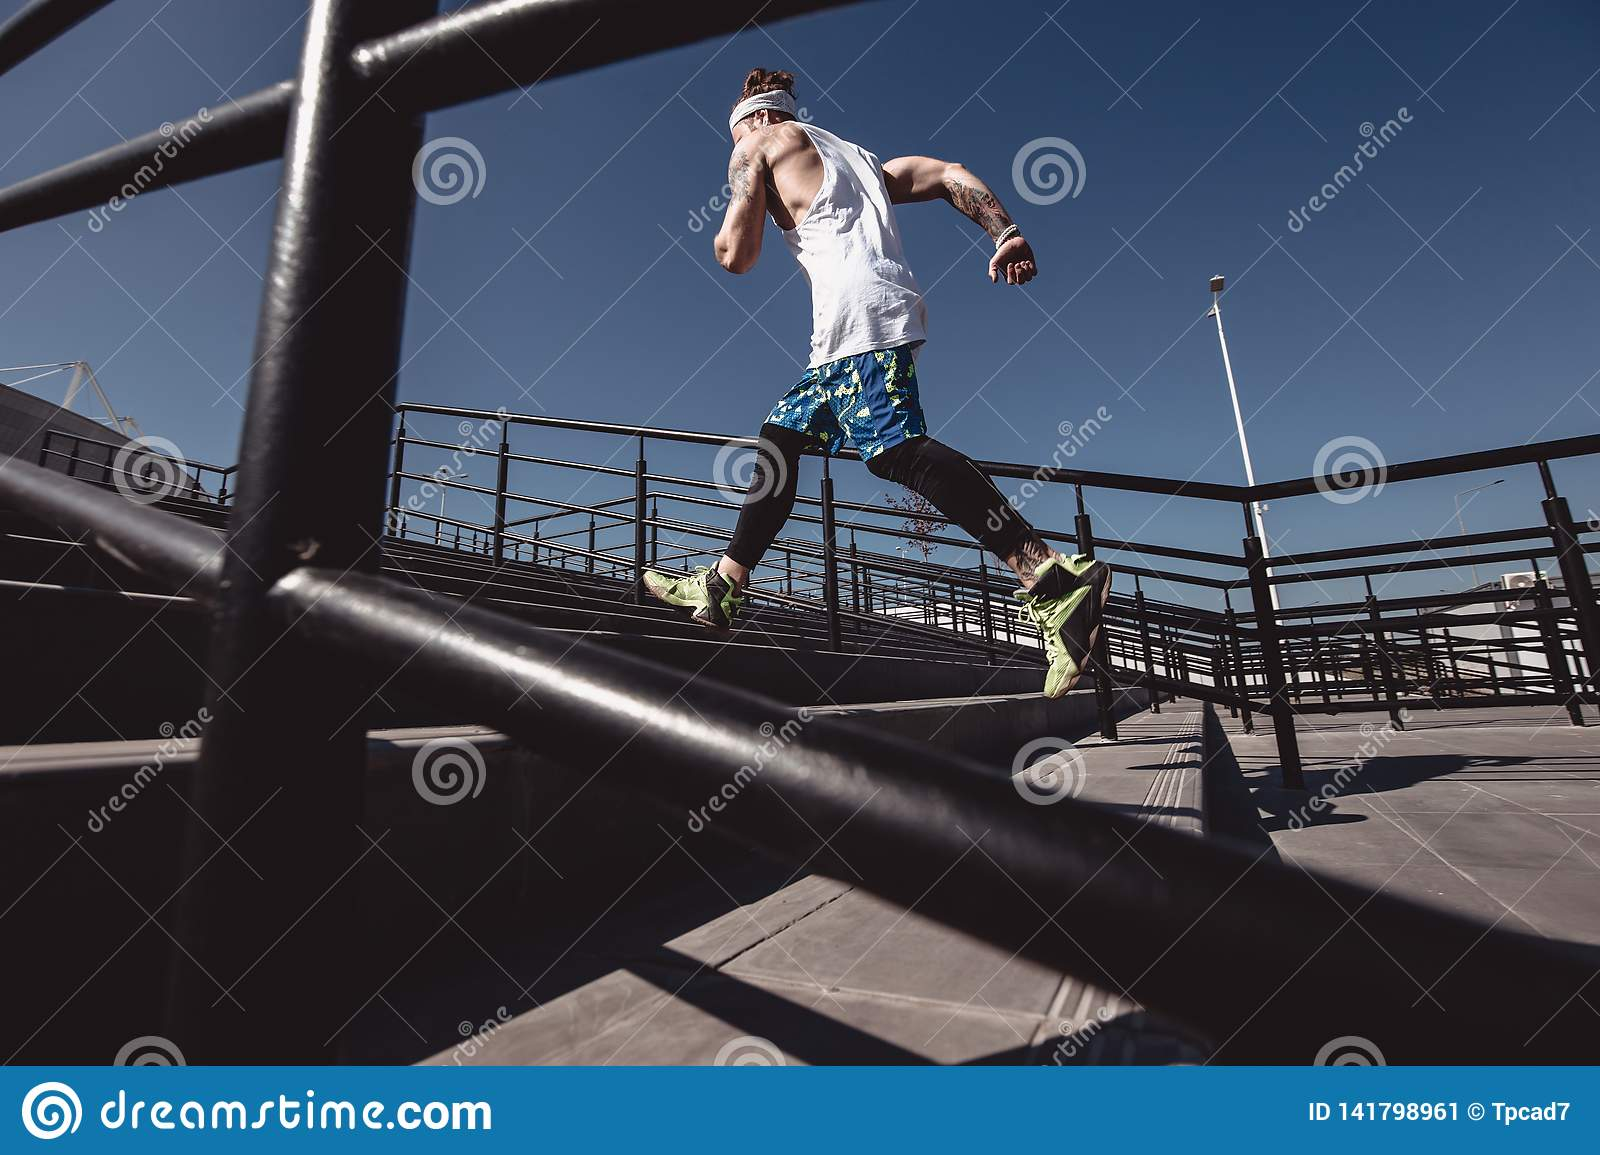 Athletic man with headband on his head dressed in the white t-shirt, black leggings and blue shorts is running up the